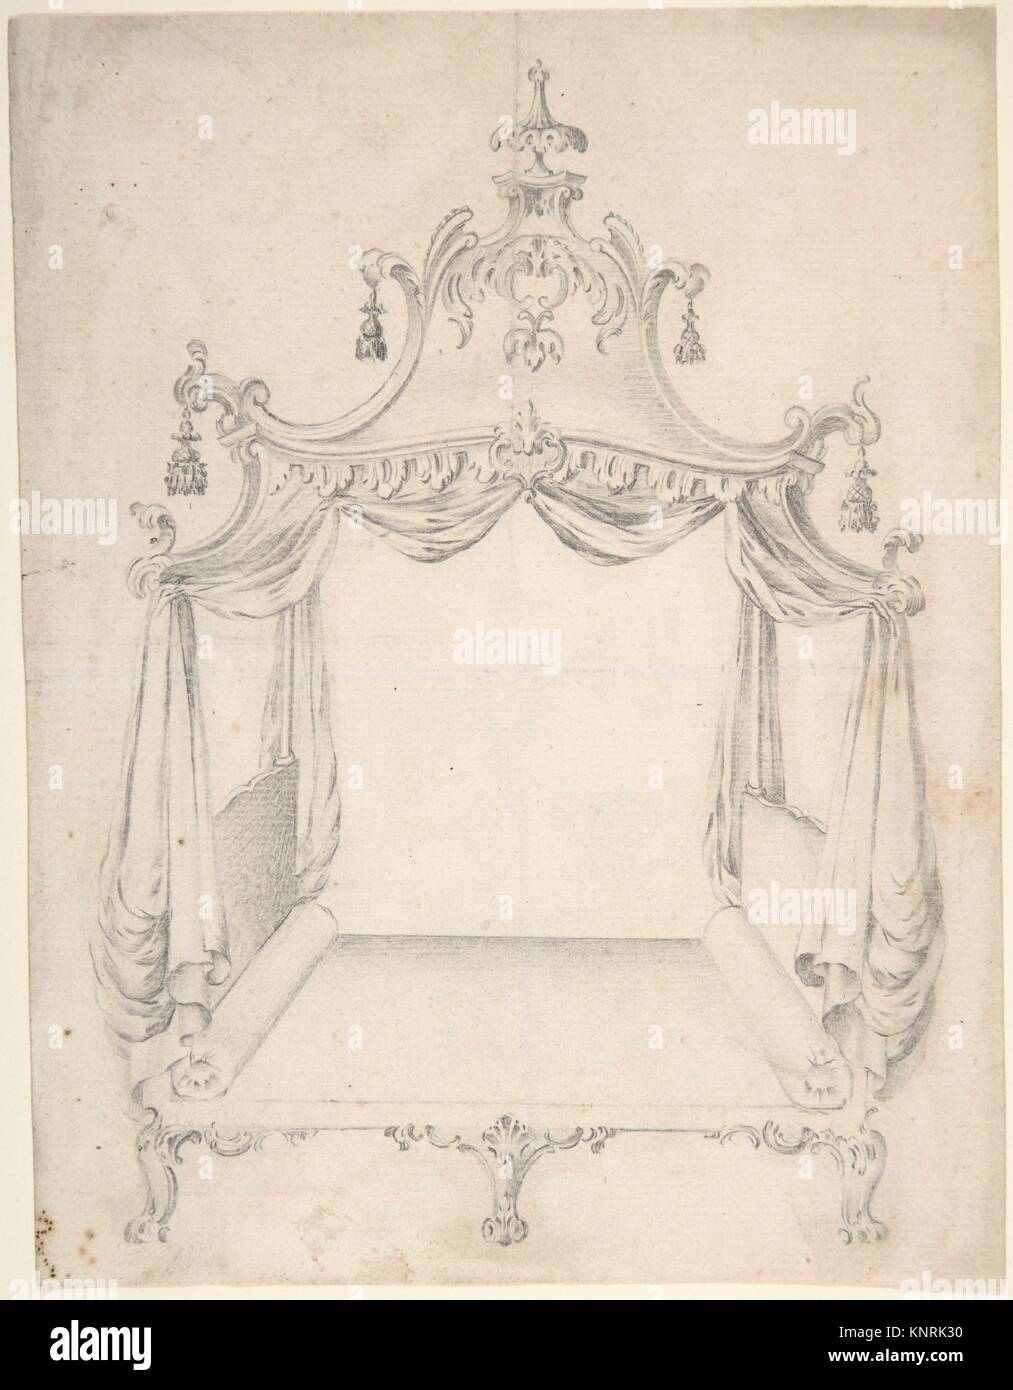 Design for a Four-poster Bed with Hangings. Artist: Anonymous, British, 18th century; Date: 18th century; Medium: - Stock Image